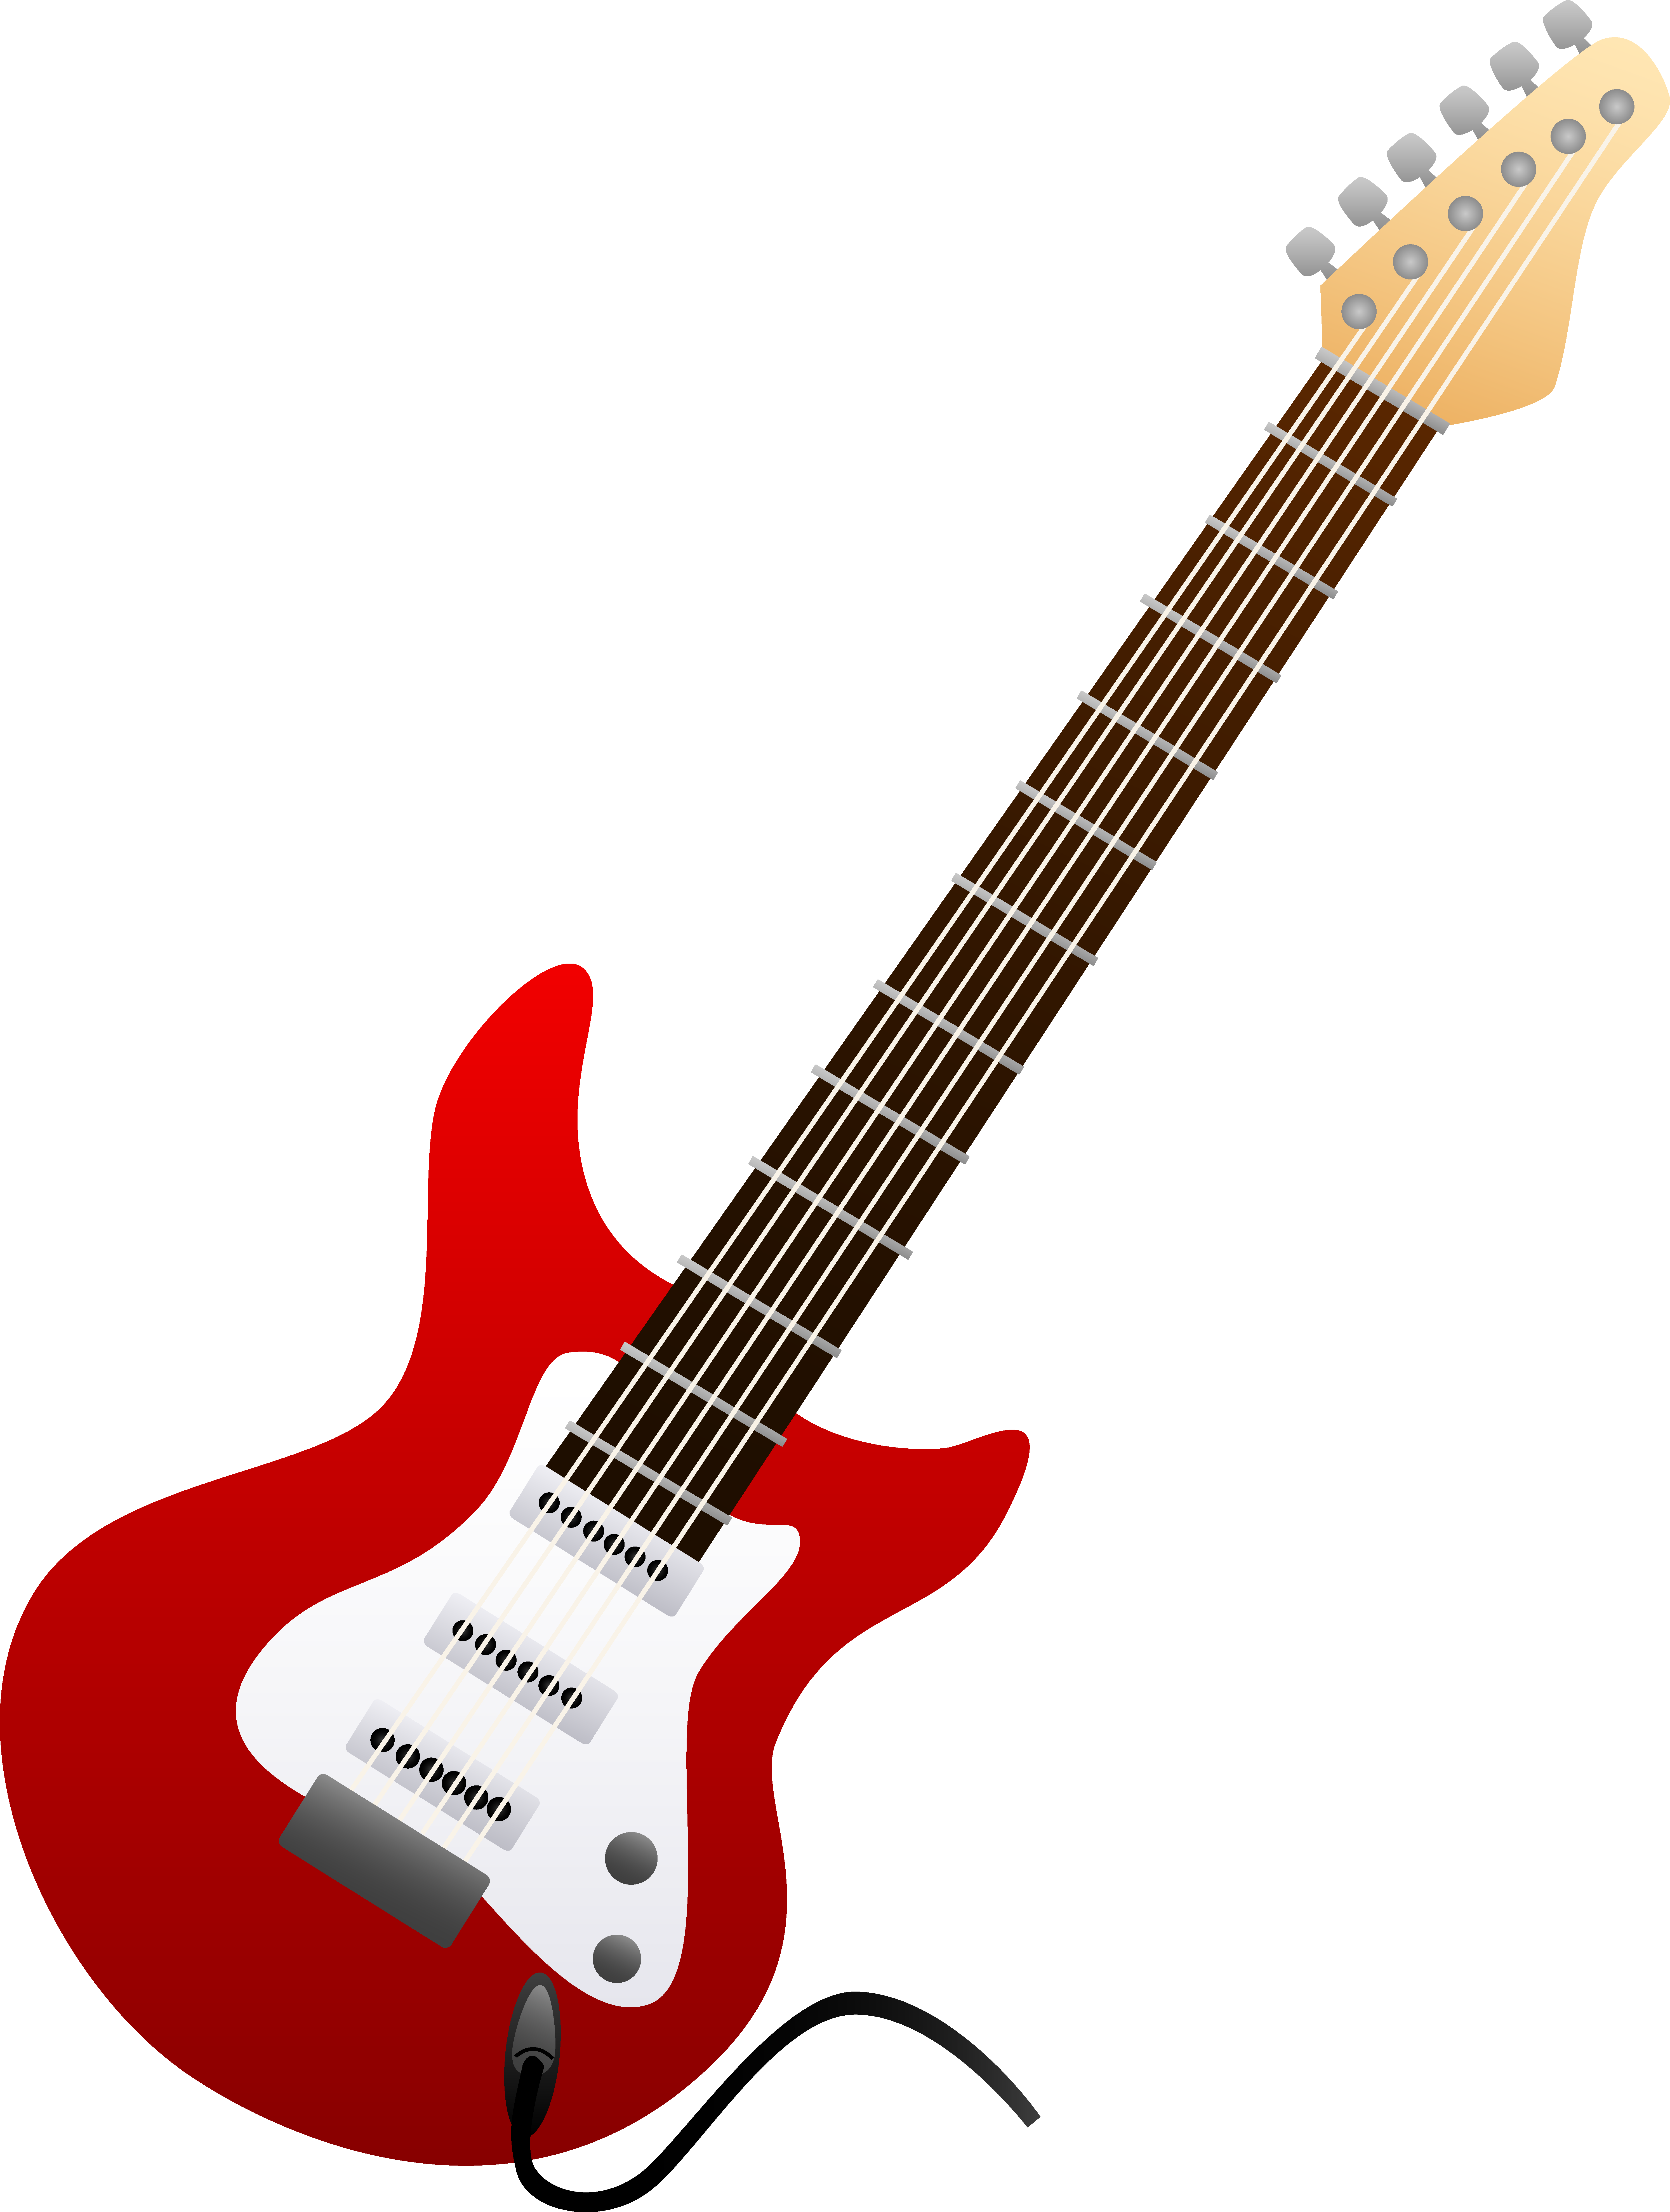 80 s electric guitar clipart clipart freeuse Free Electric Guitar Clipart, Download Free Clip Art, Free Clip Art ... clipart freeuse